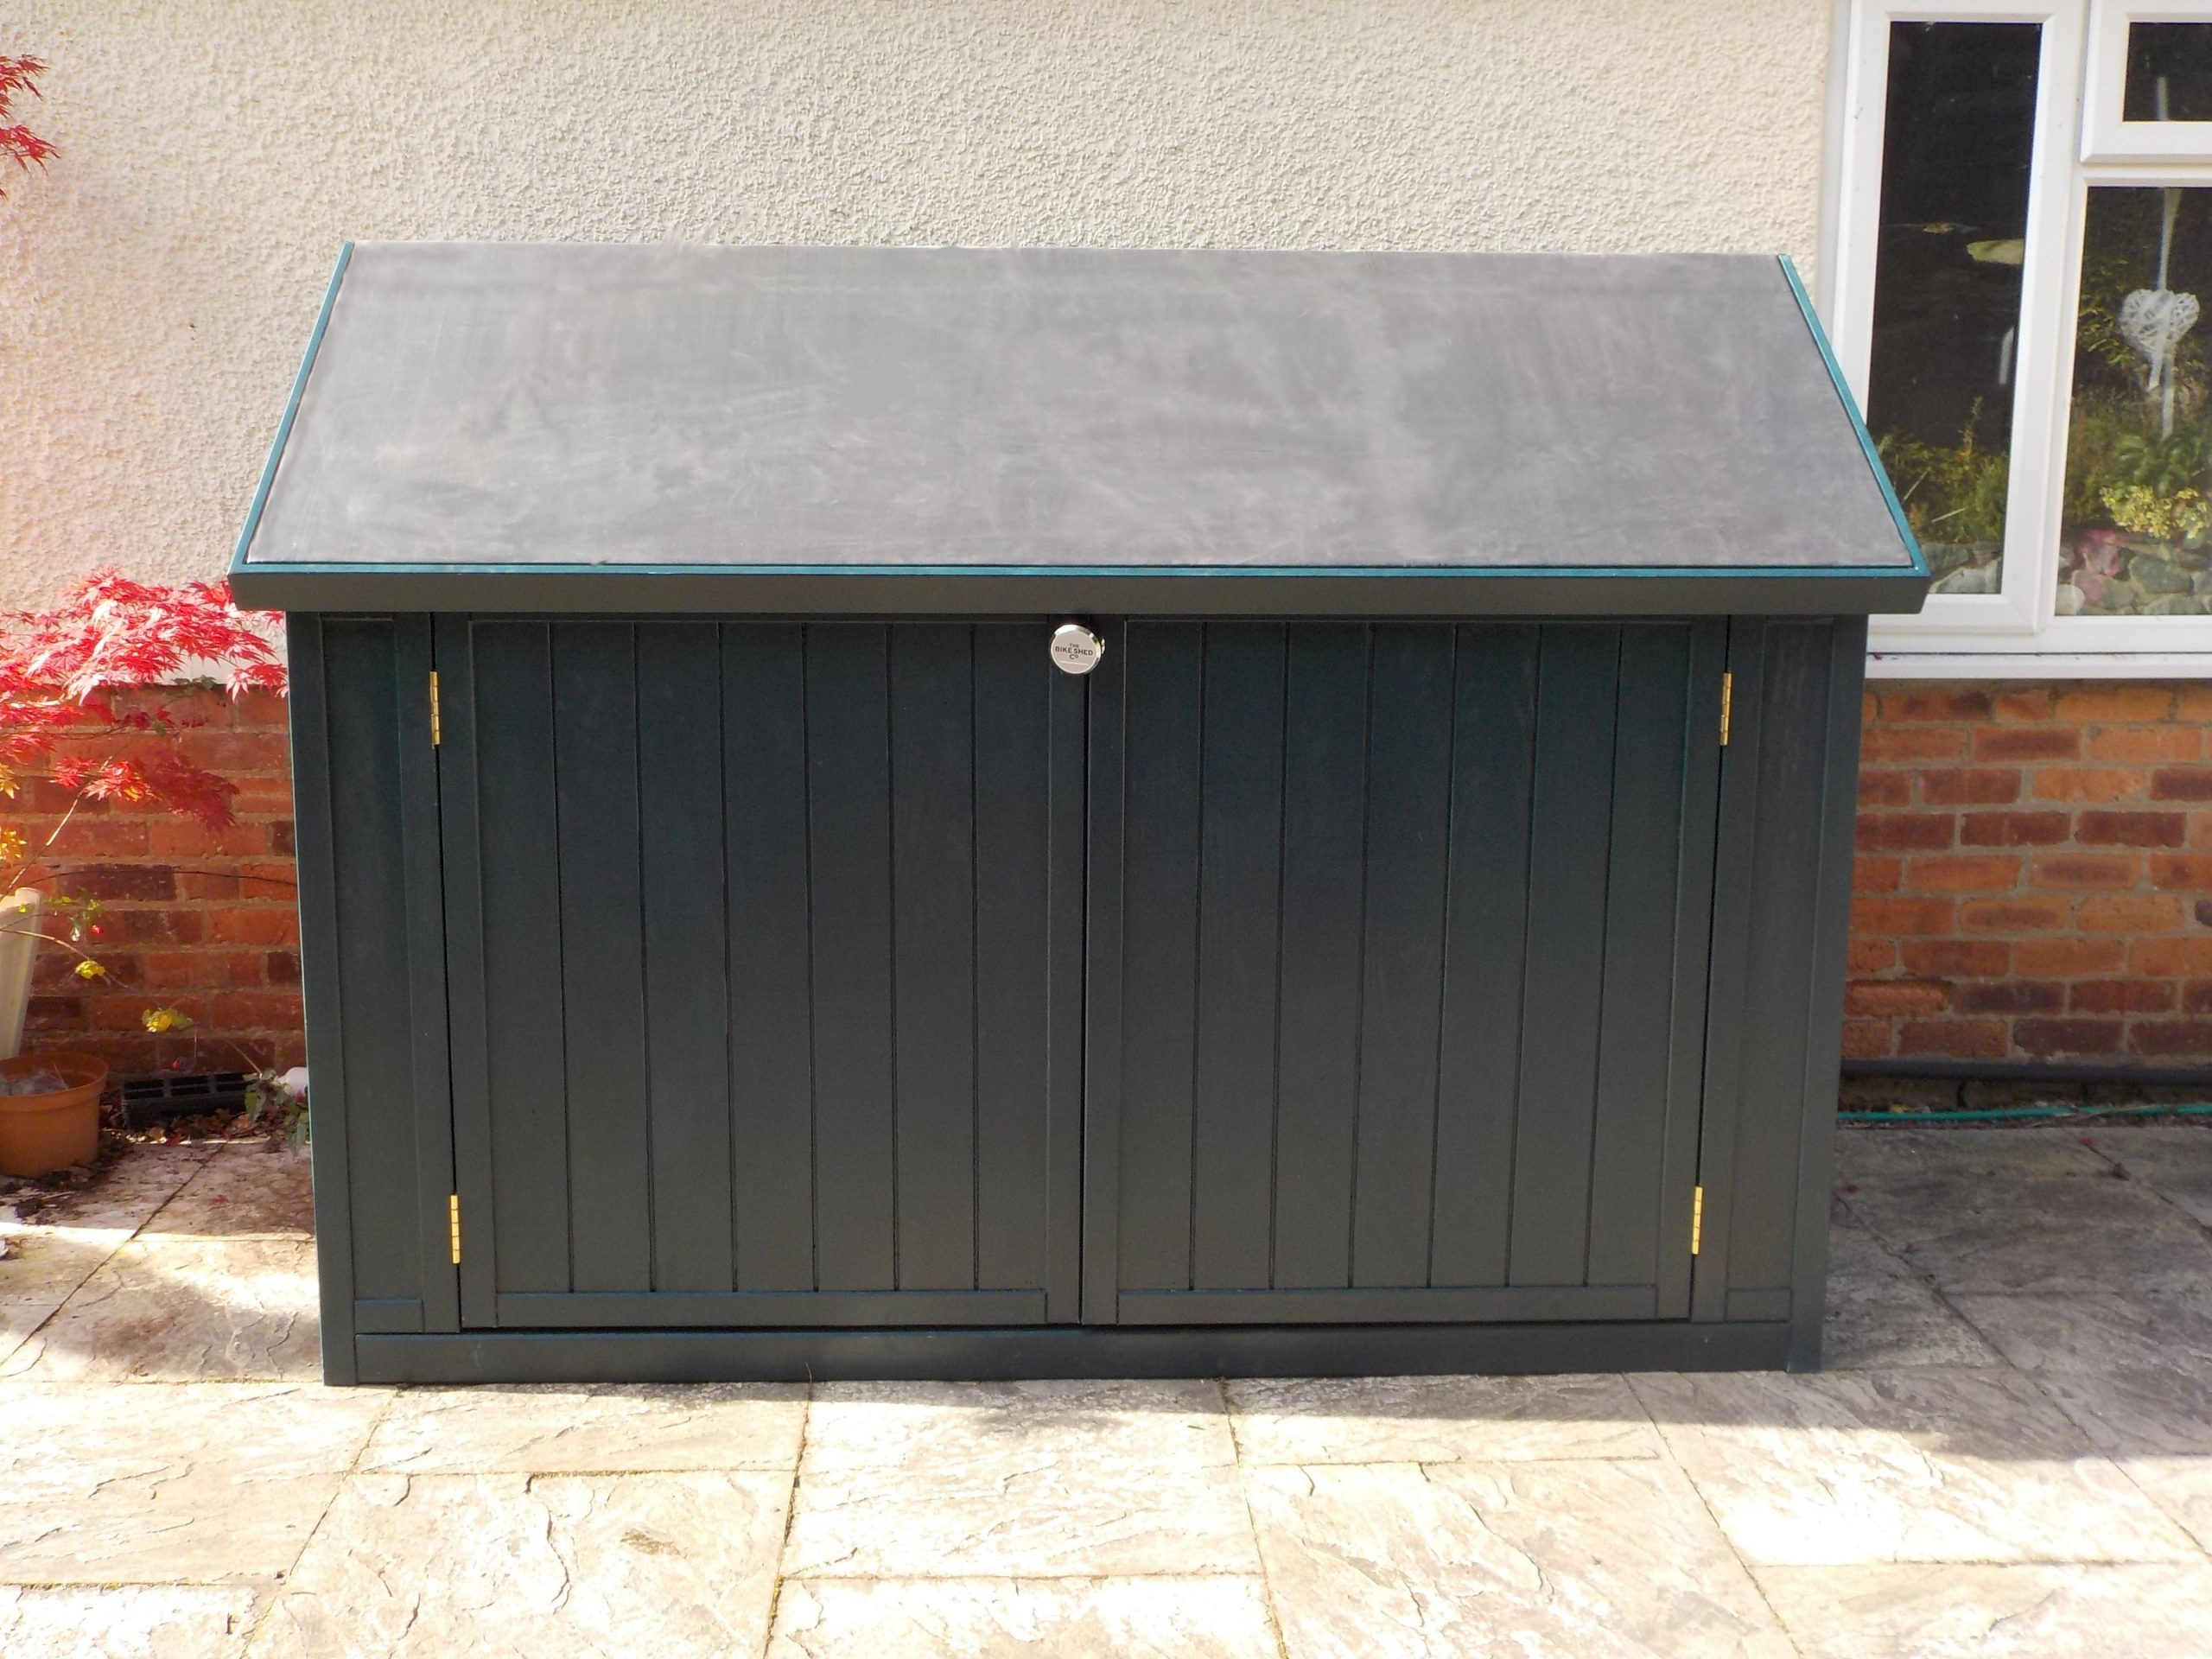 Solid And Secure Bike Sheds, Hand Made In Bristol For Uk And ... pour Trimetals Abri Jardin